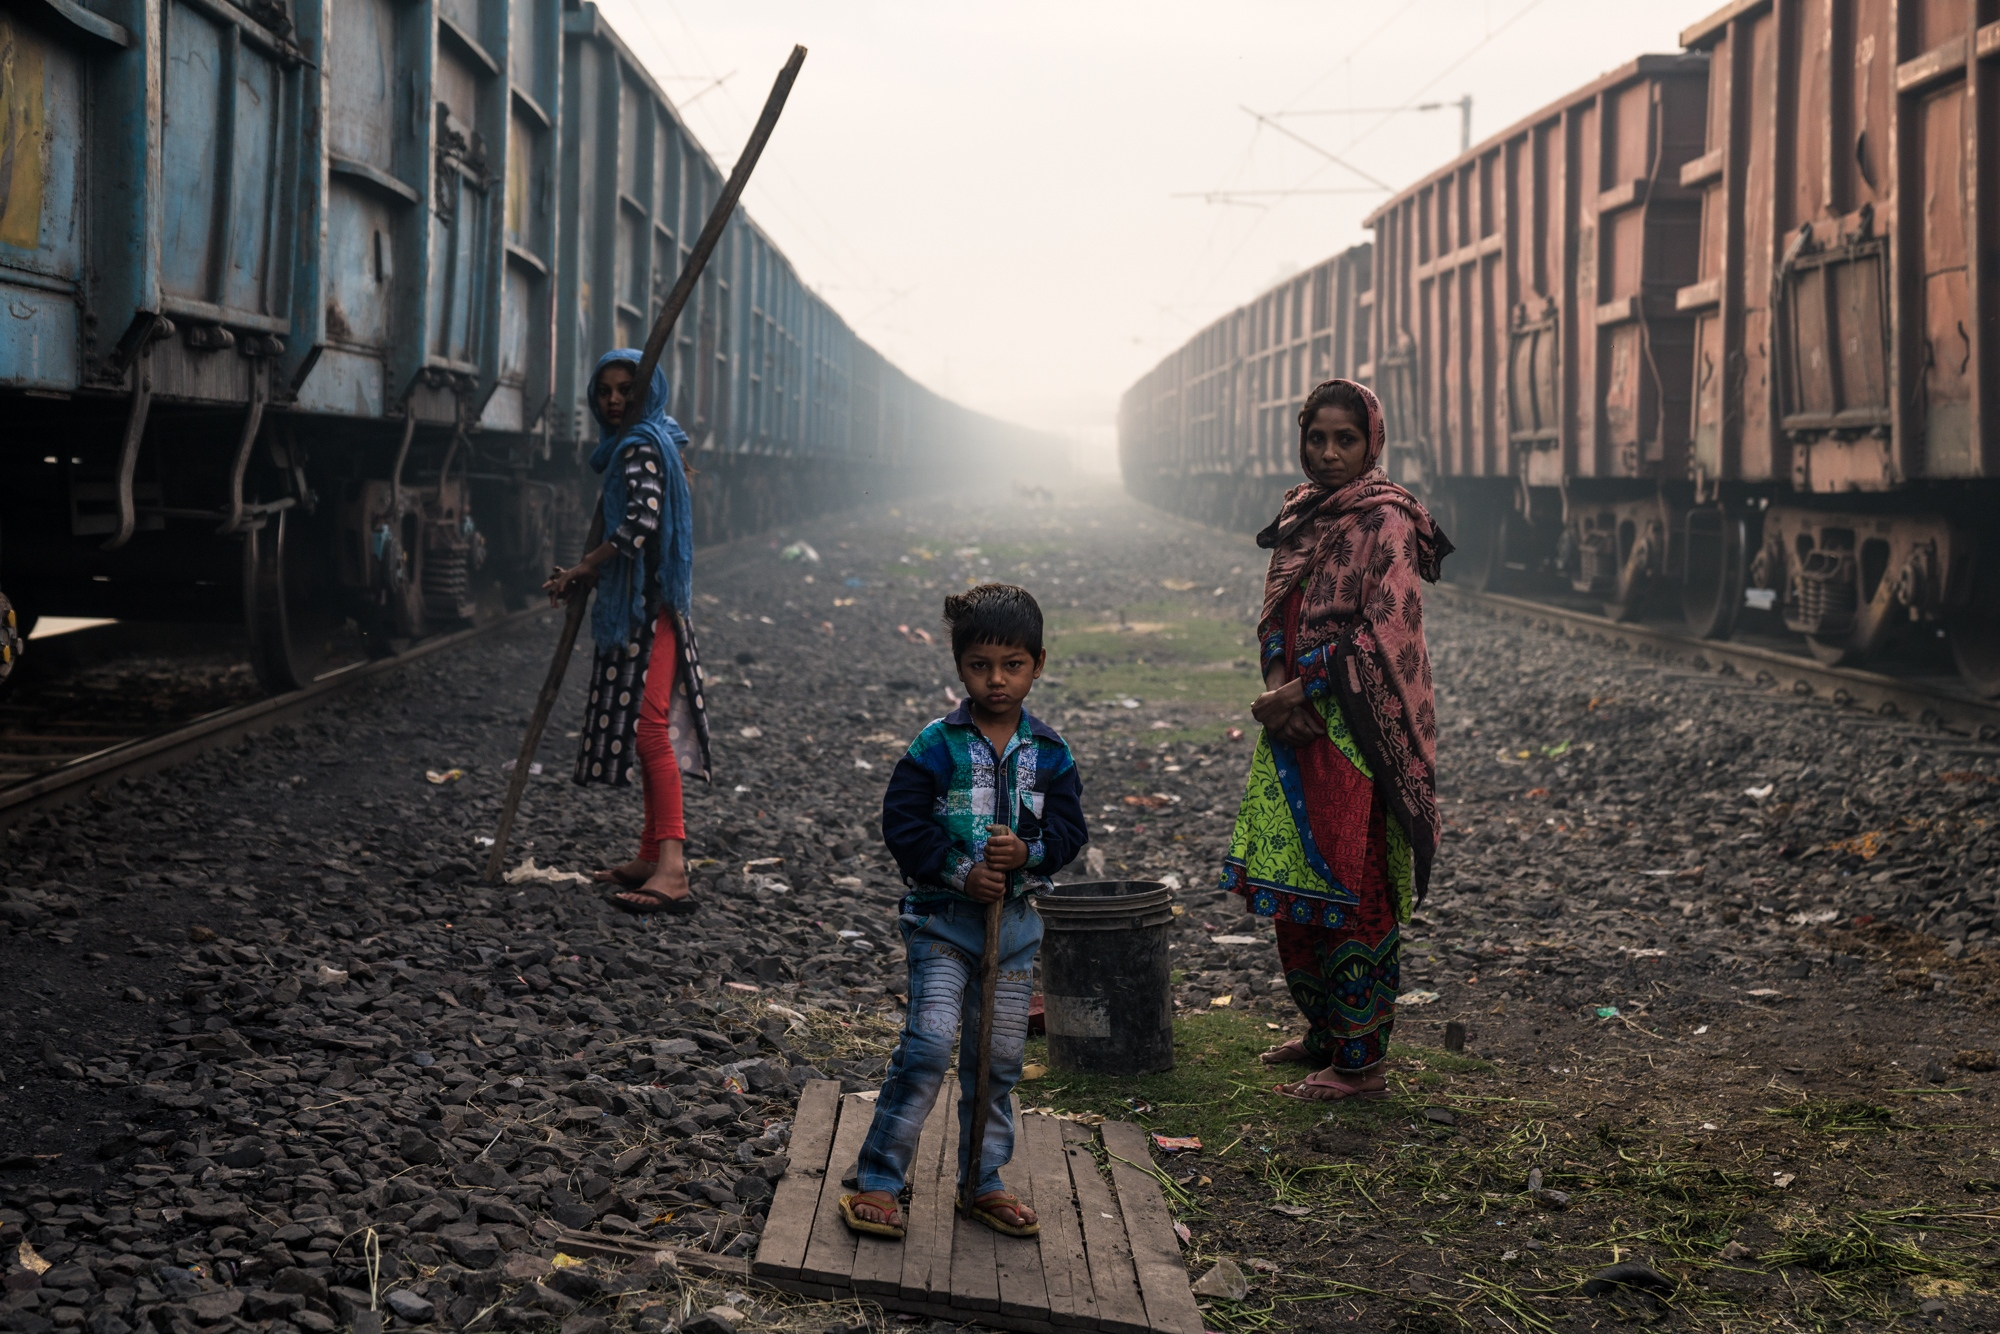 A mother and her two children wait for the trains to halt; after they will break into the carriage using the long stick to steal left-over coal for cooking fuel. Central India.